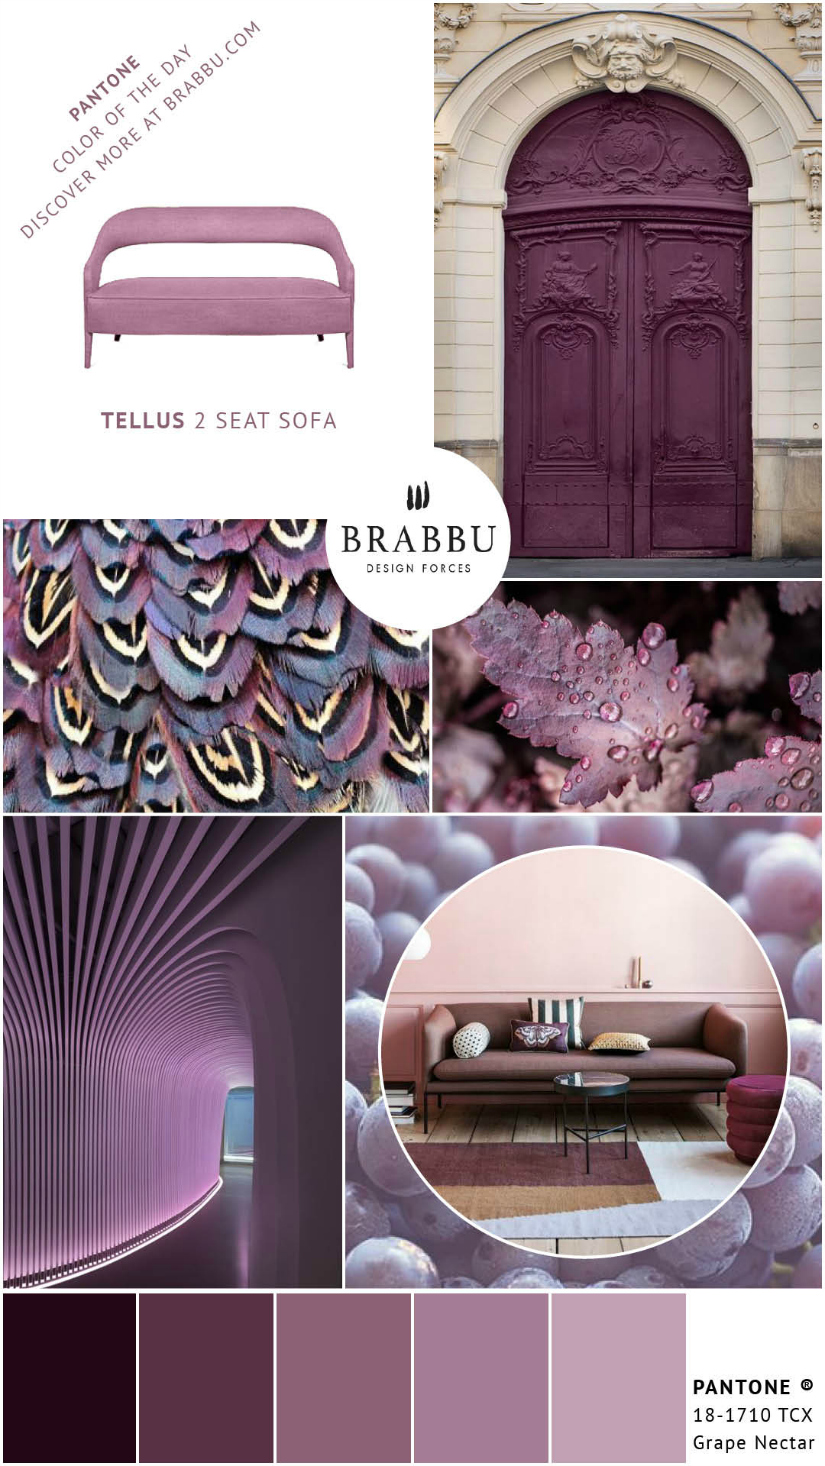 A Week In Colors: Five Color Trends To Add To Your Home Decor XI |home decor, color trends, modern interior design #colortrends #interiordesign #homedecor  home decor A Week In Colors: Five Color Trends To Add To Your Home Decor XI Grape Nectar